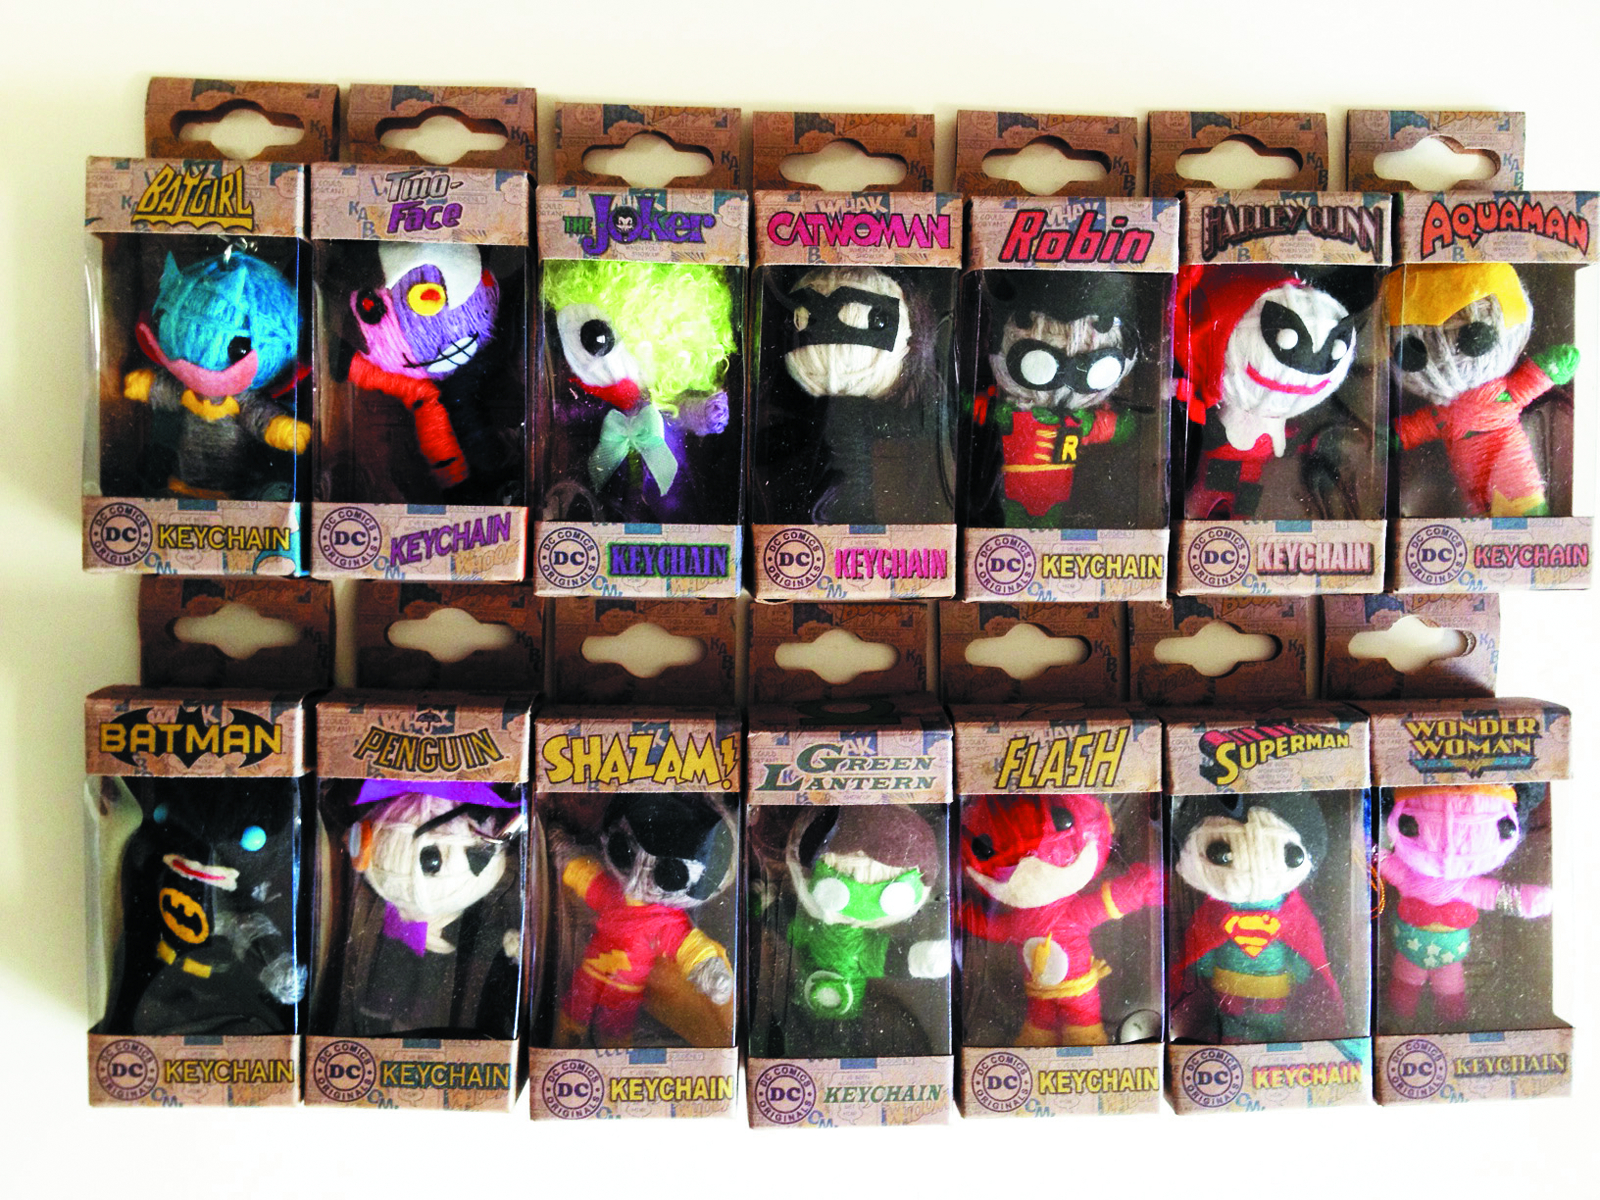 DC COMICS STRING DOLL 12-PC ASST